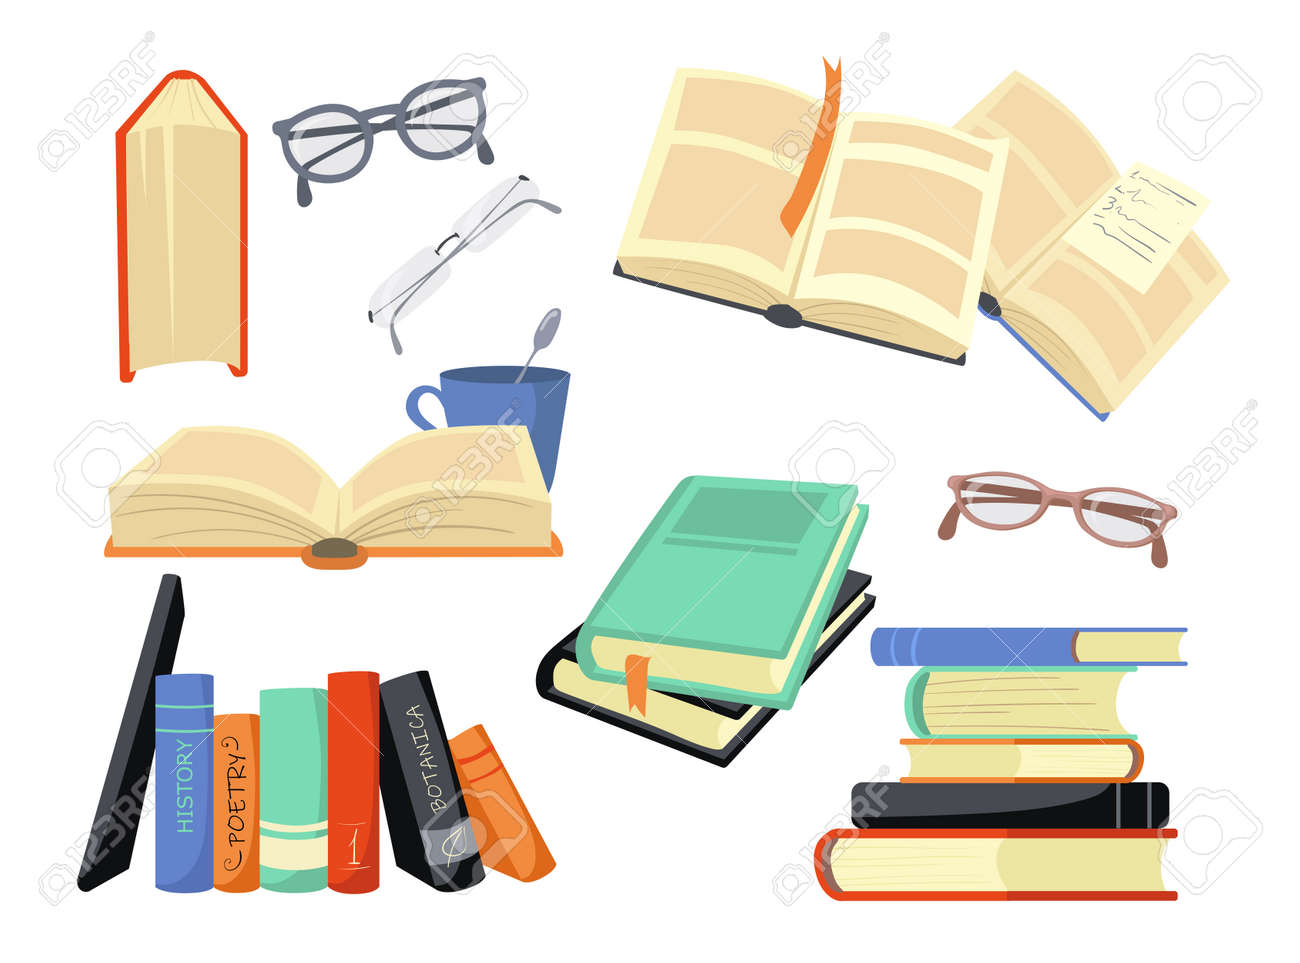 Cartoon set of different colorful books and reading symbols. Flat vector illustration. History, poetry, philosophy books and glasses. Study, literature, scholarship, information concept for design - 168077970